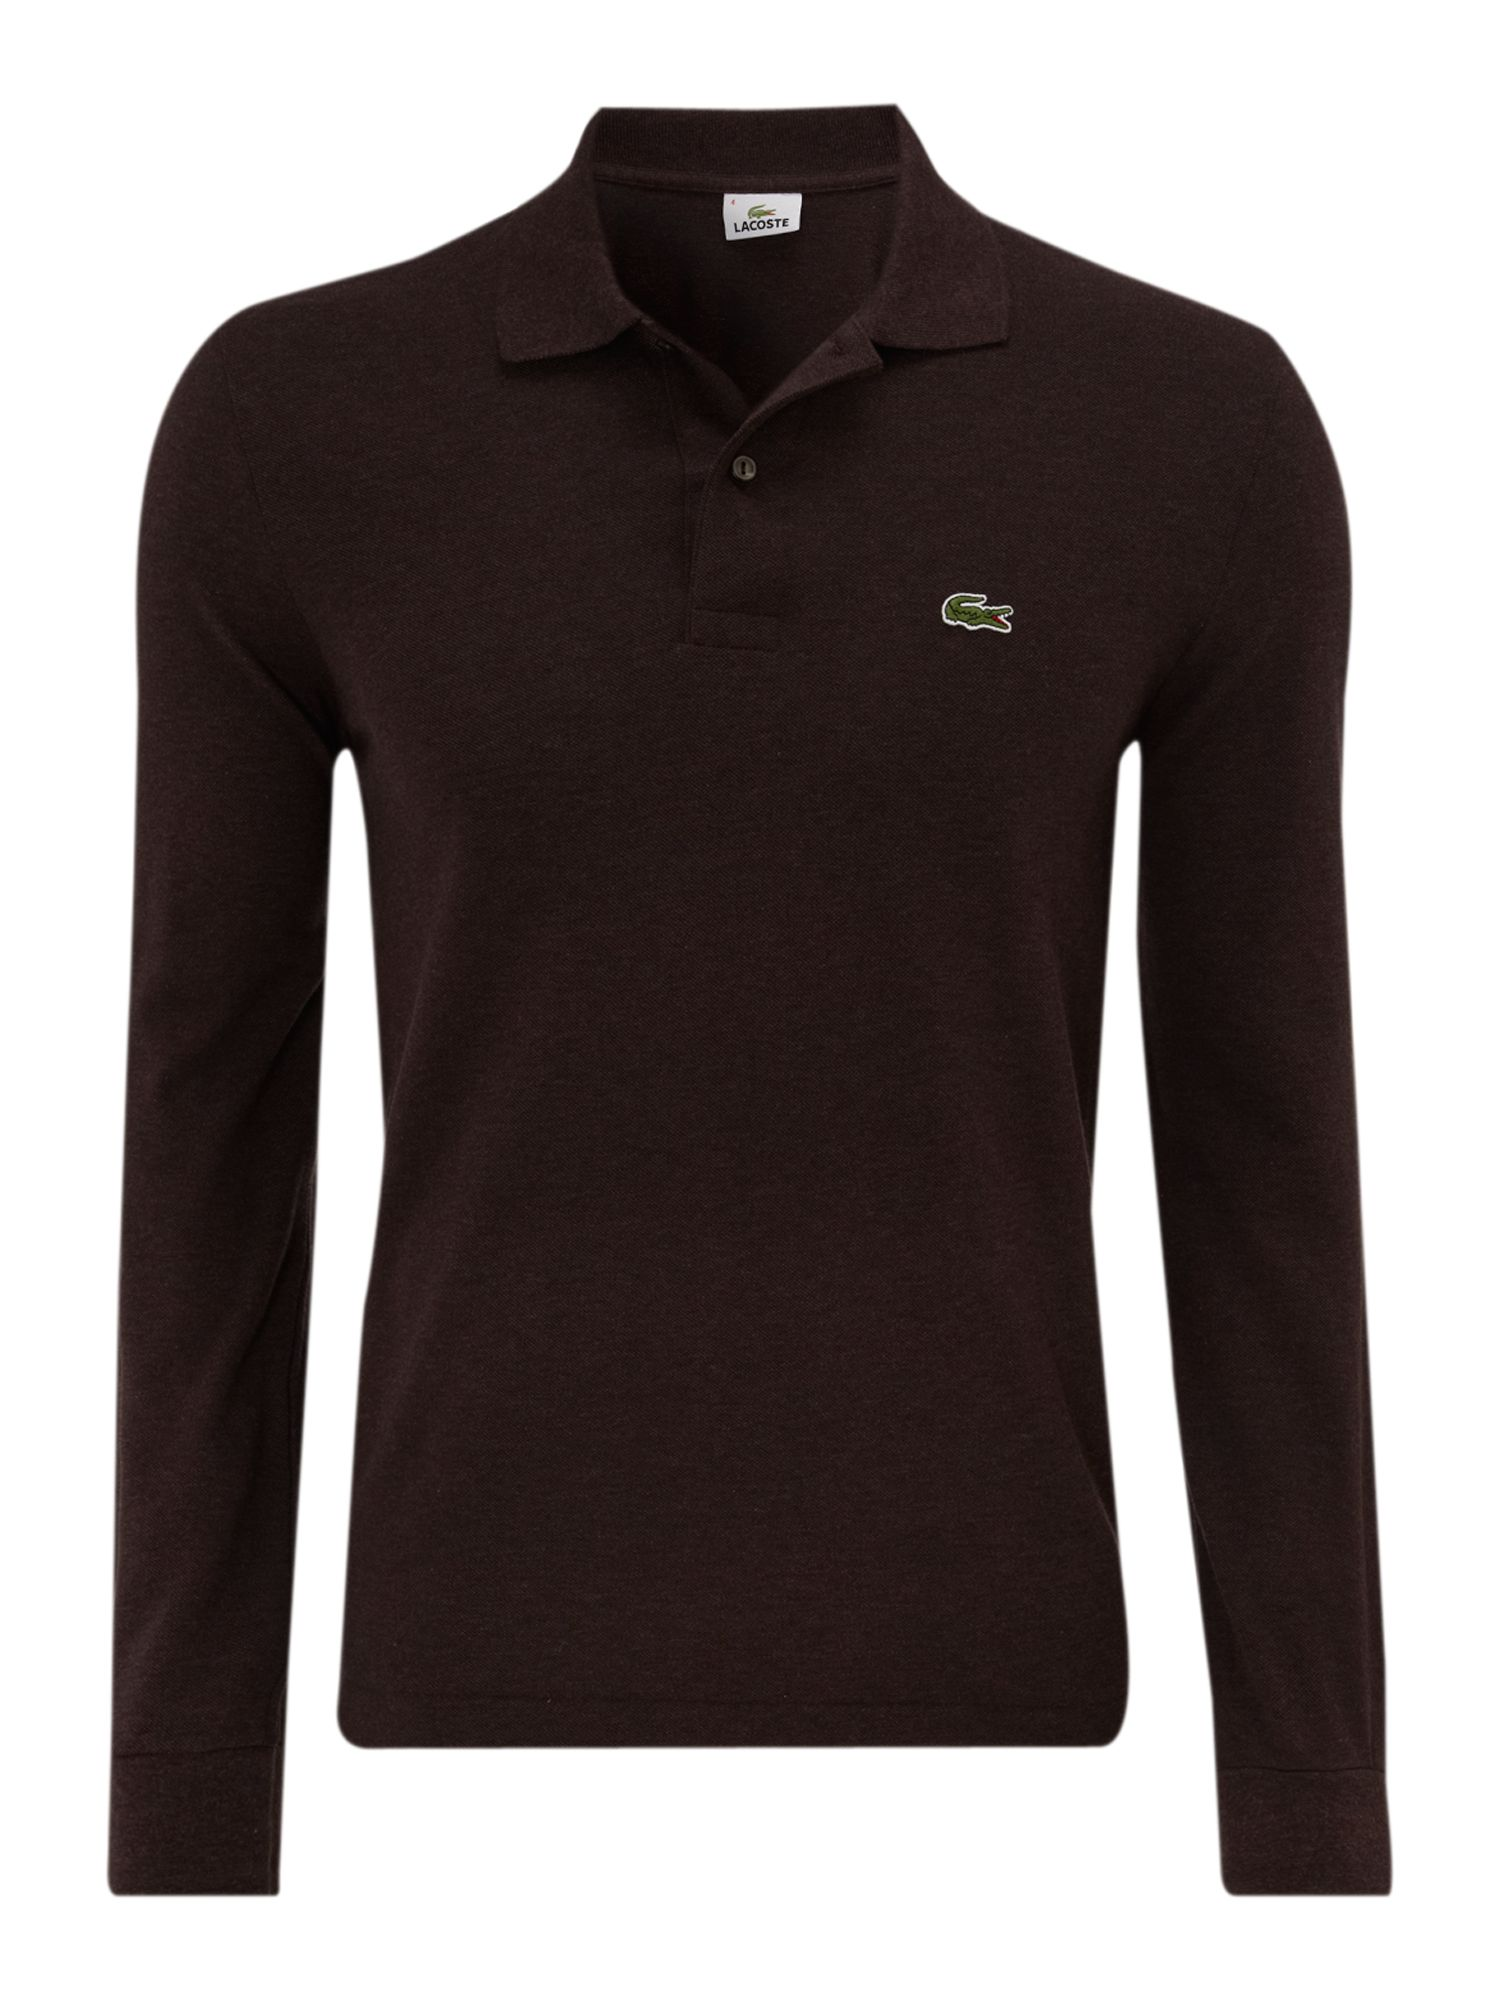 Lyst Lacoste Classic Long Sleeved Marl Polo Shirt In